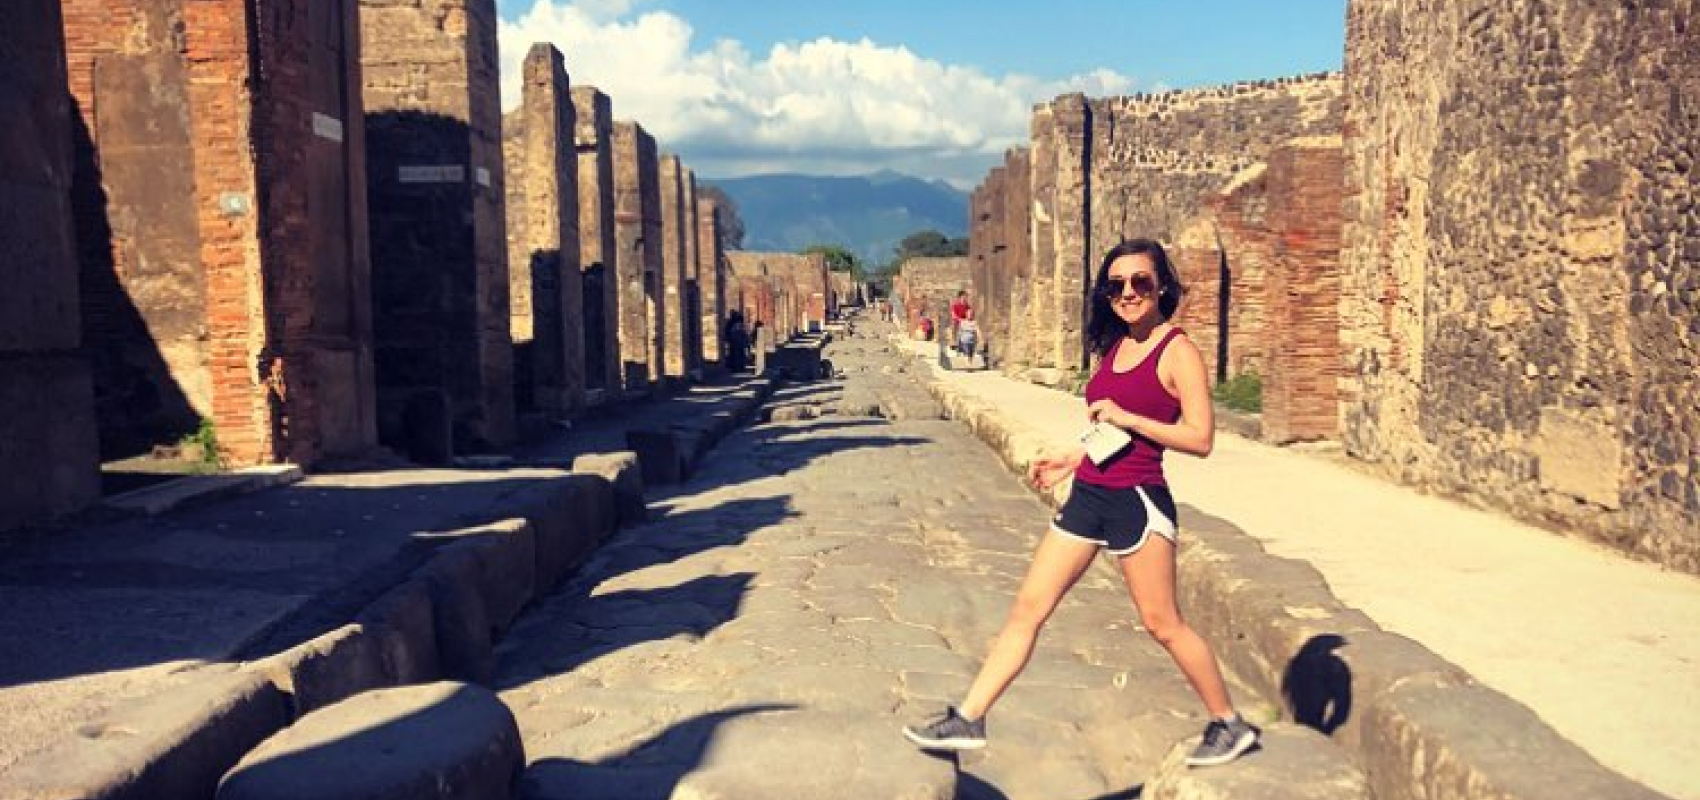 UNI student crossing ancient stone street at the ruins of Pompeii